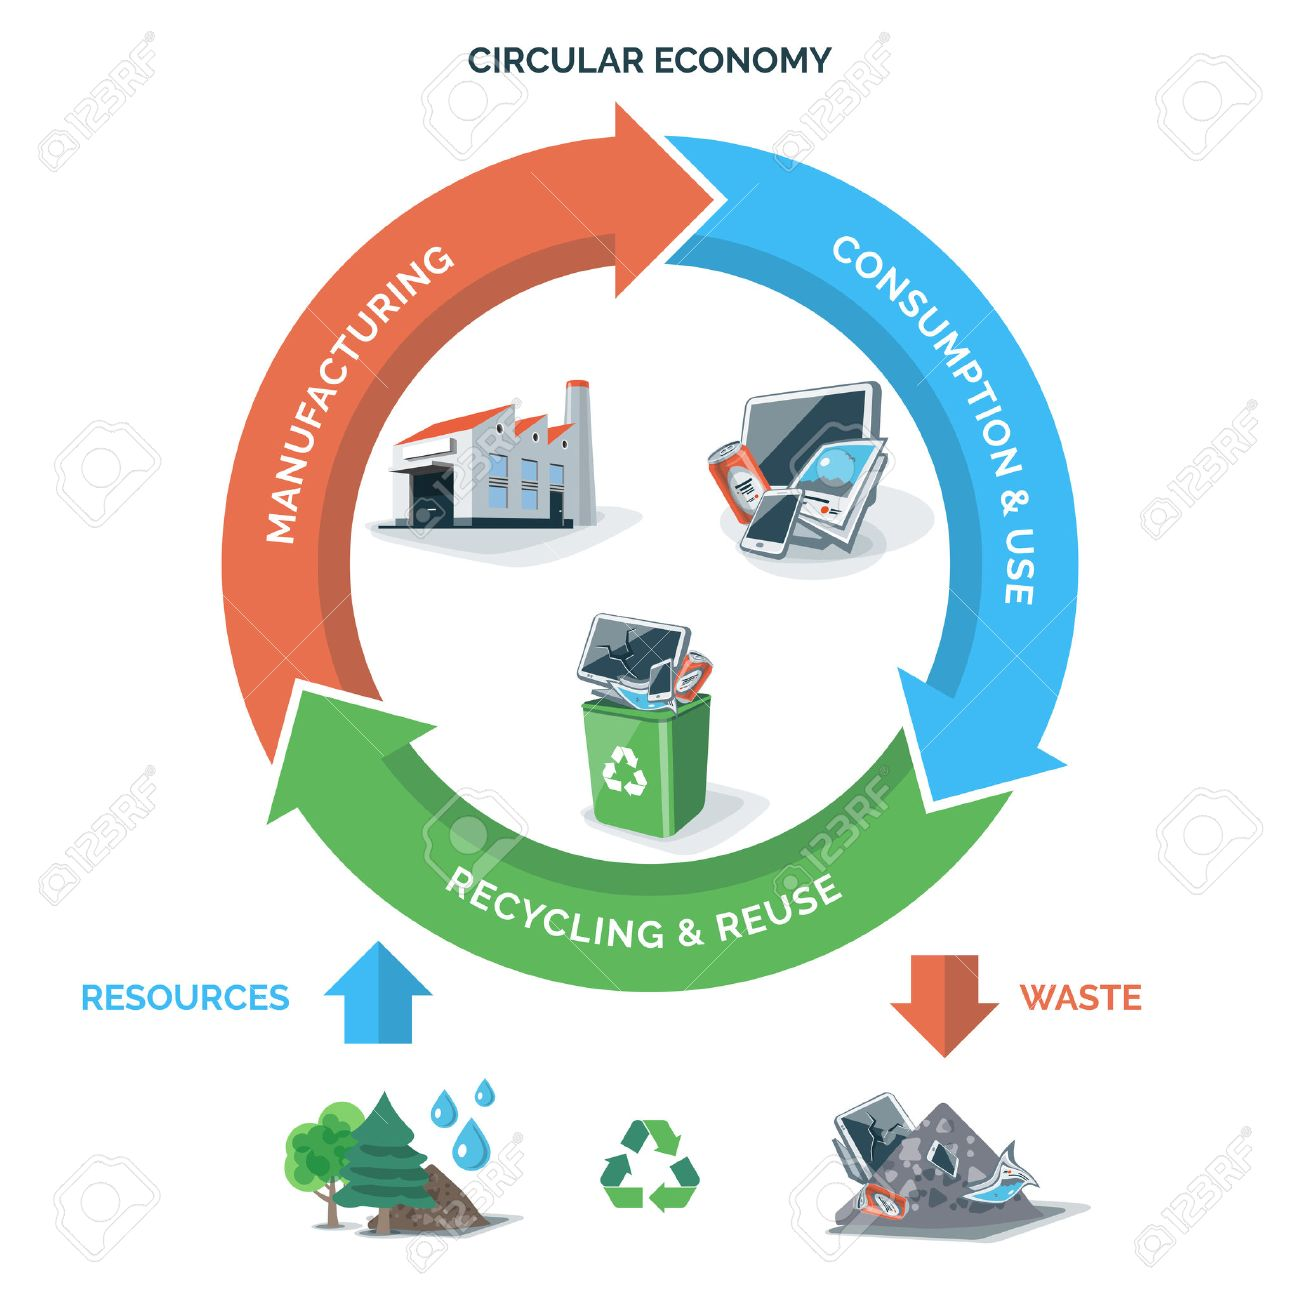 Vector illustration of circular economy showing product and material flow on white background with arrows. Natural resources are taken to manufacturing. After usage product is recycled or dumped. Waste recycling management concept. Product life cycle. - 68881804